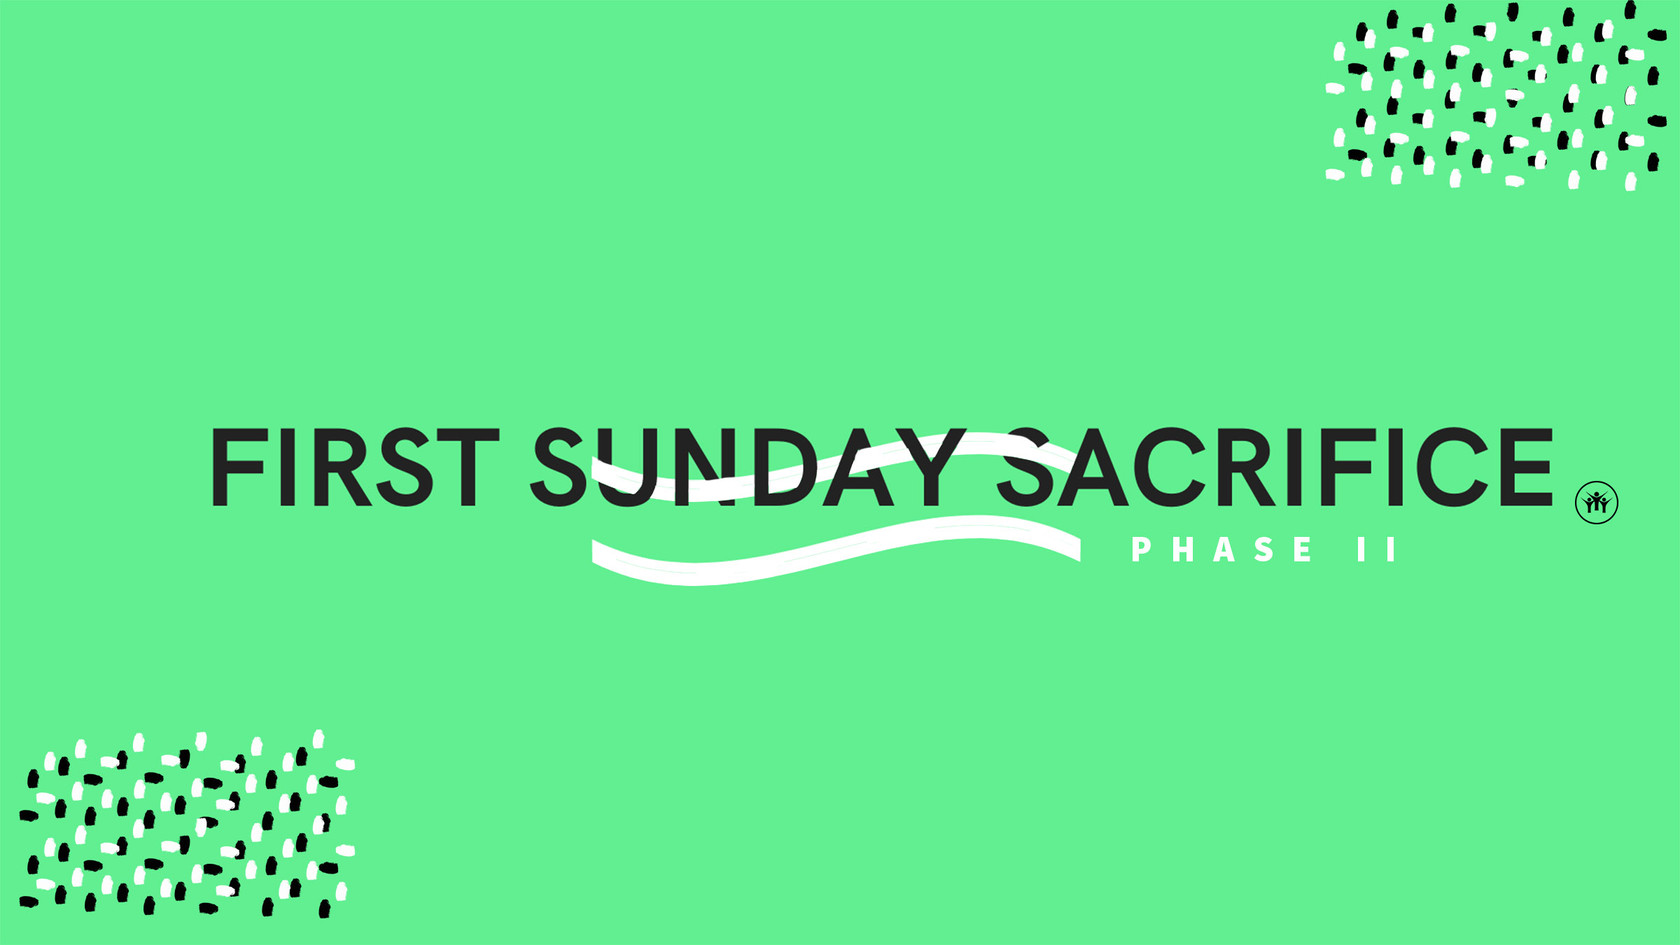 first Sunday Sacrifice phase ii.jpg